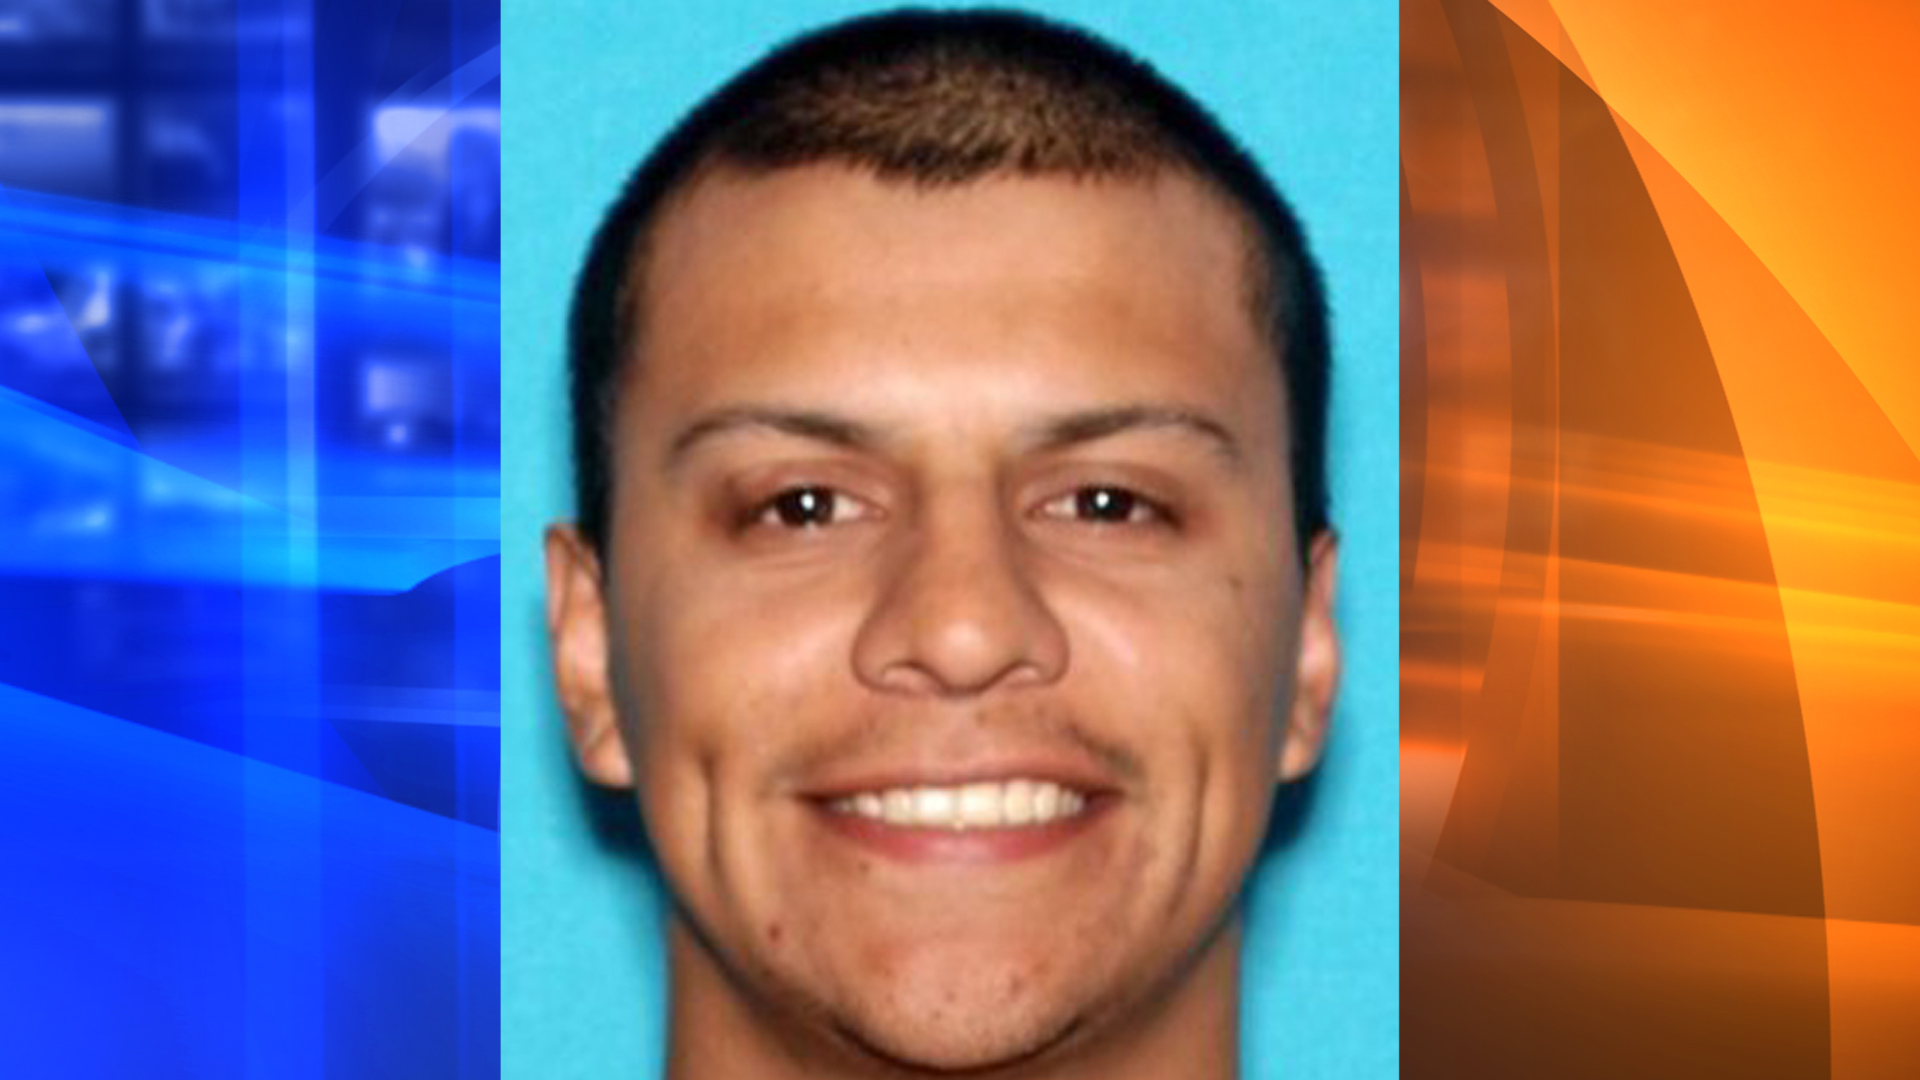 Christopher Peter Espinoza, 30, is seen in a photo released by the Los Angeles County Sheriff's Department on Jan. 24, 2019.